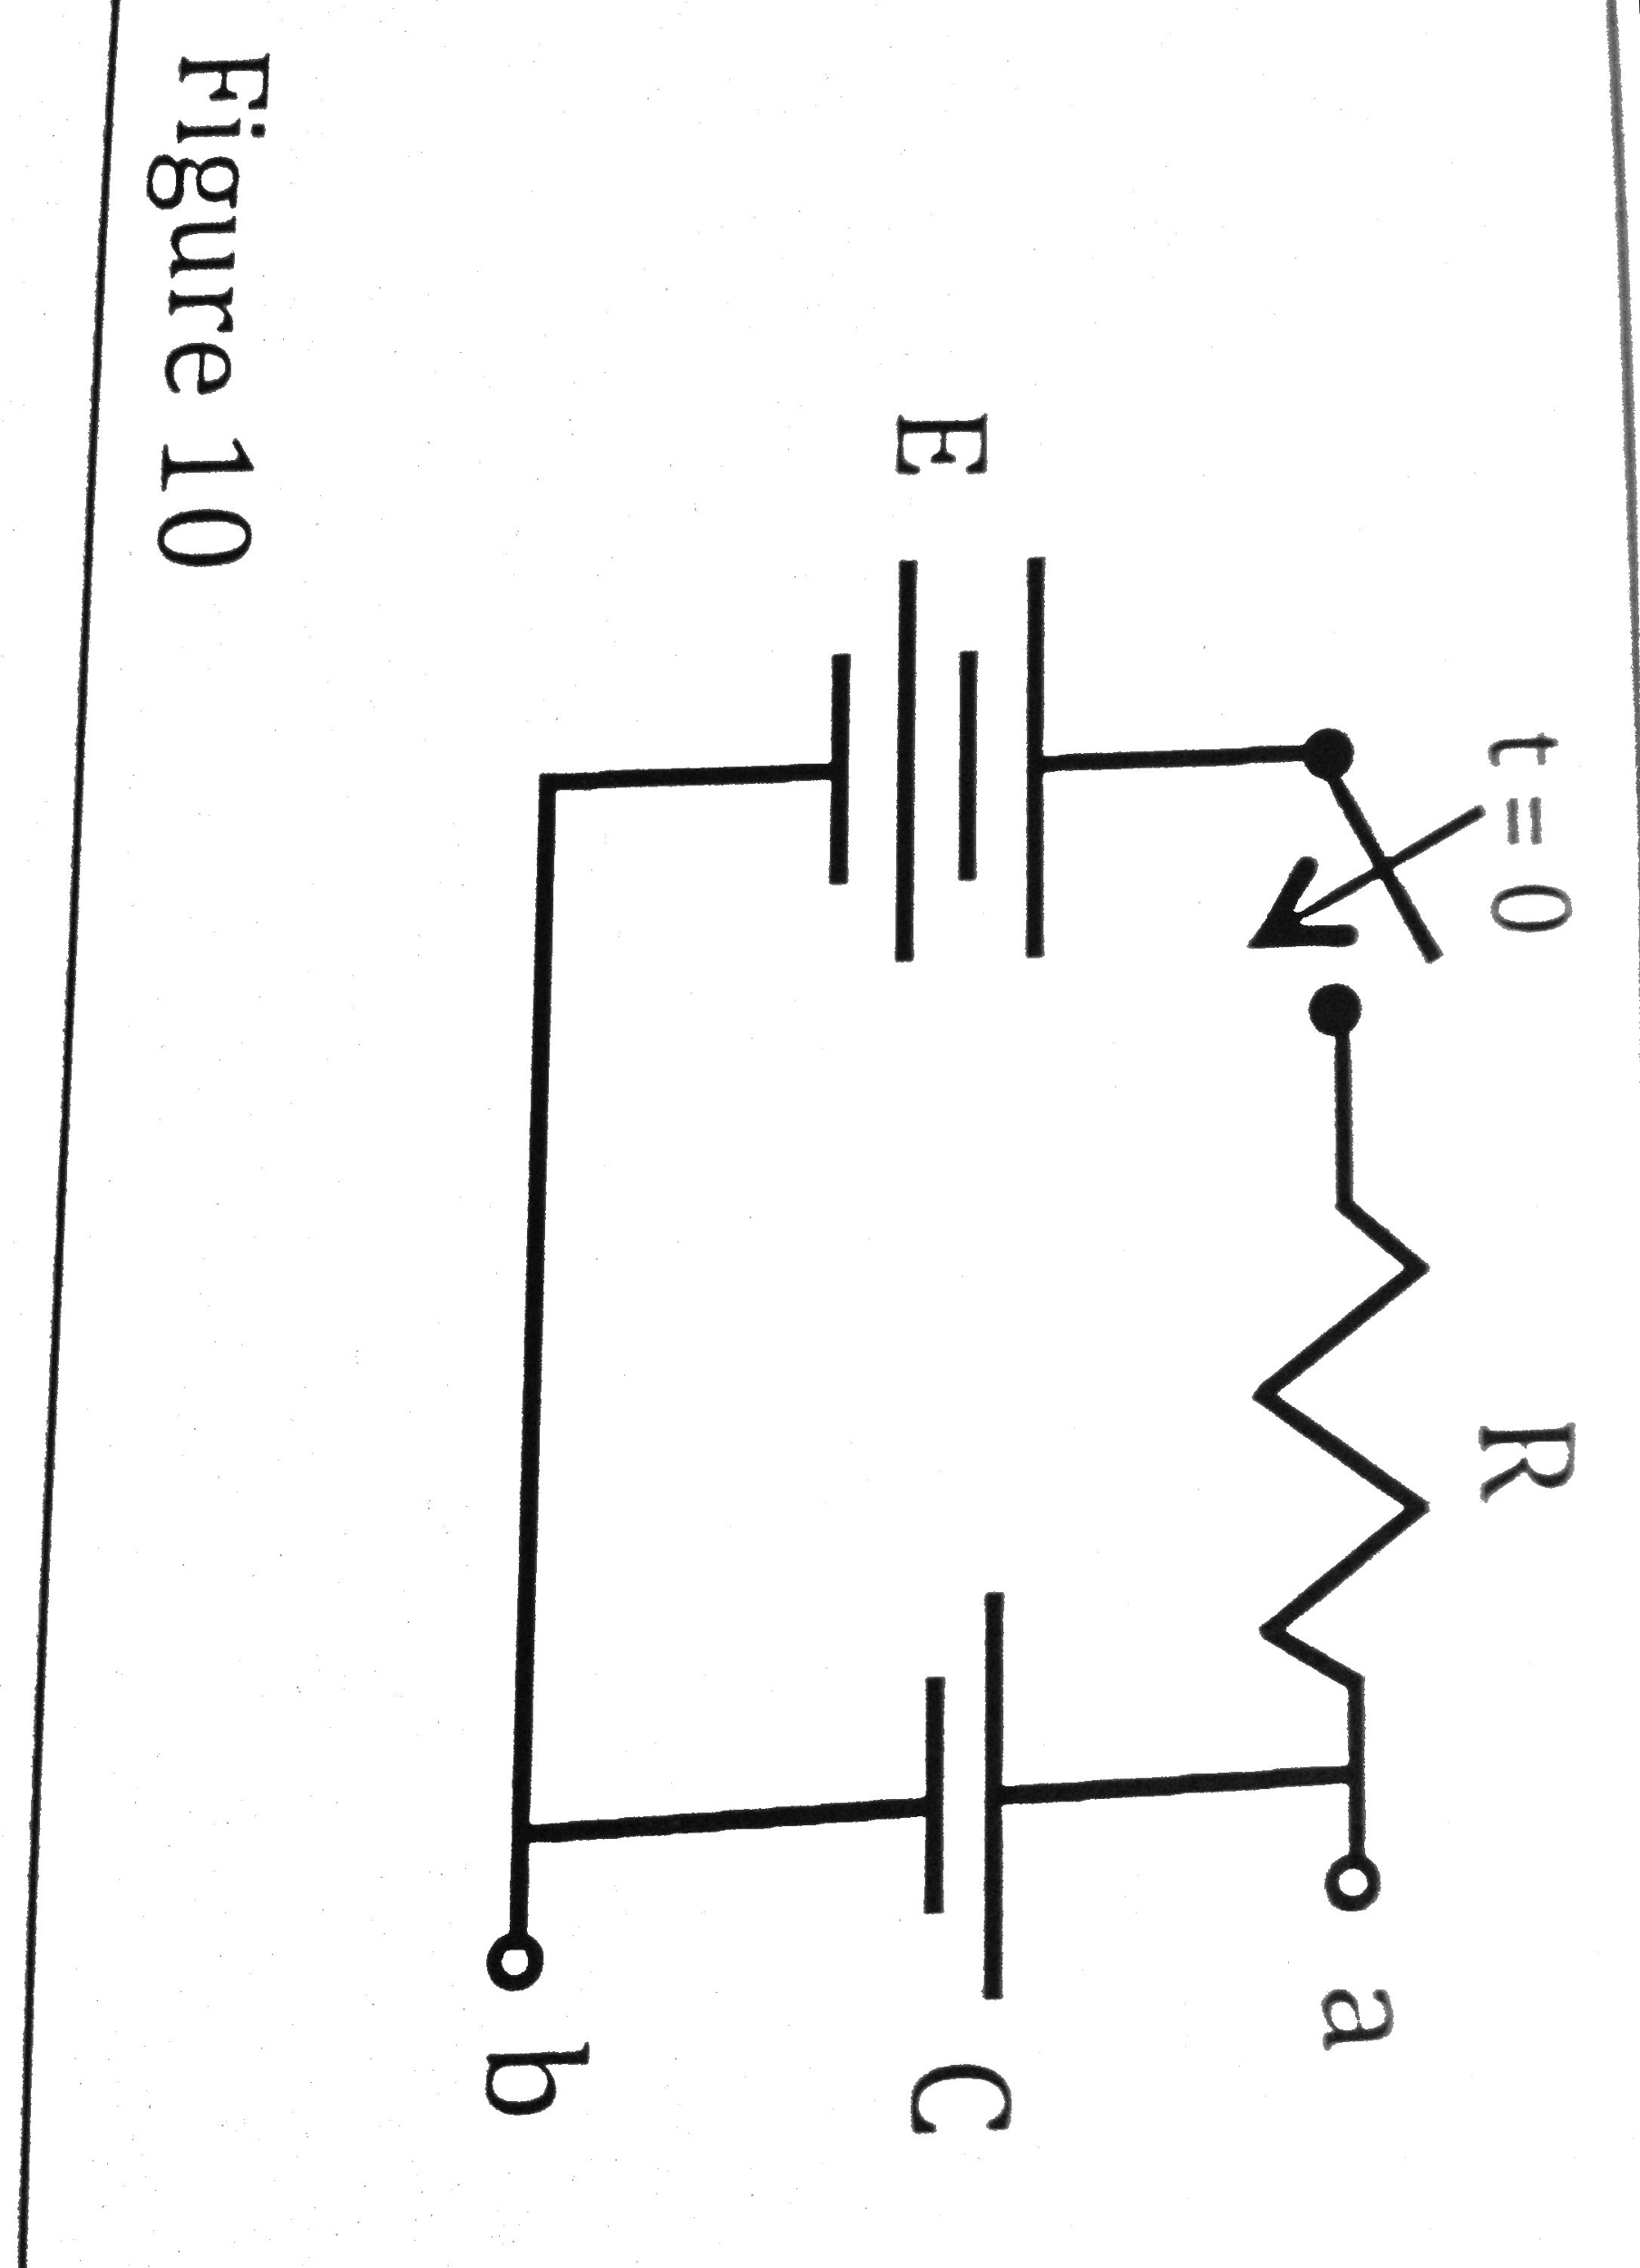 In Figure 10, E = +10V and R = 2 Ohms, C = 3C and